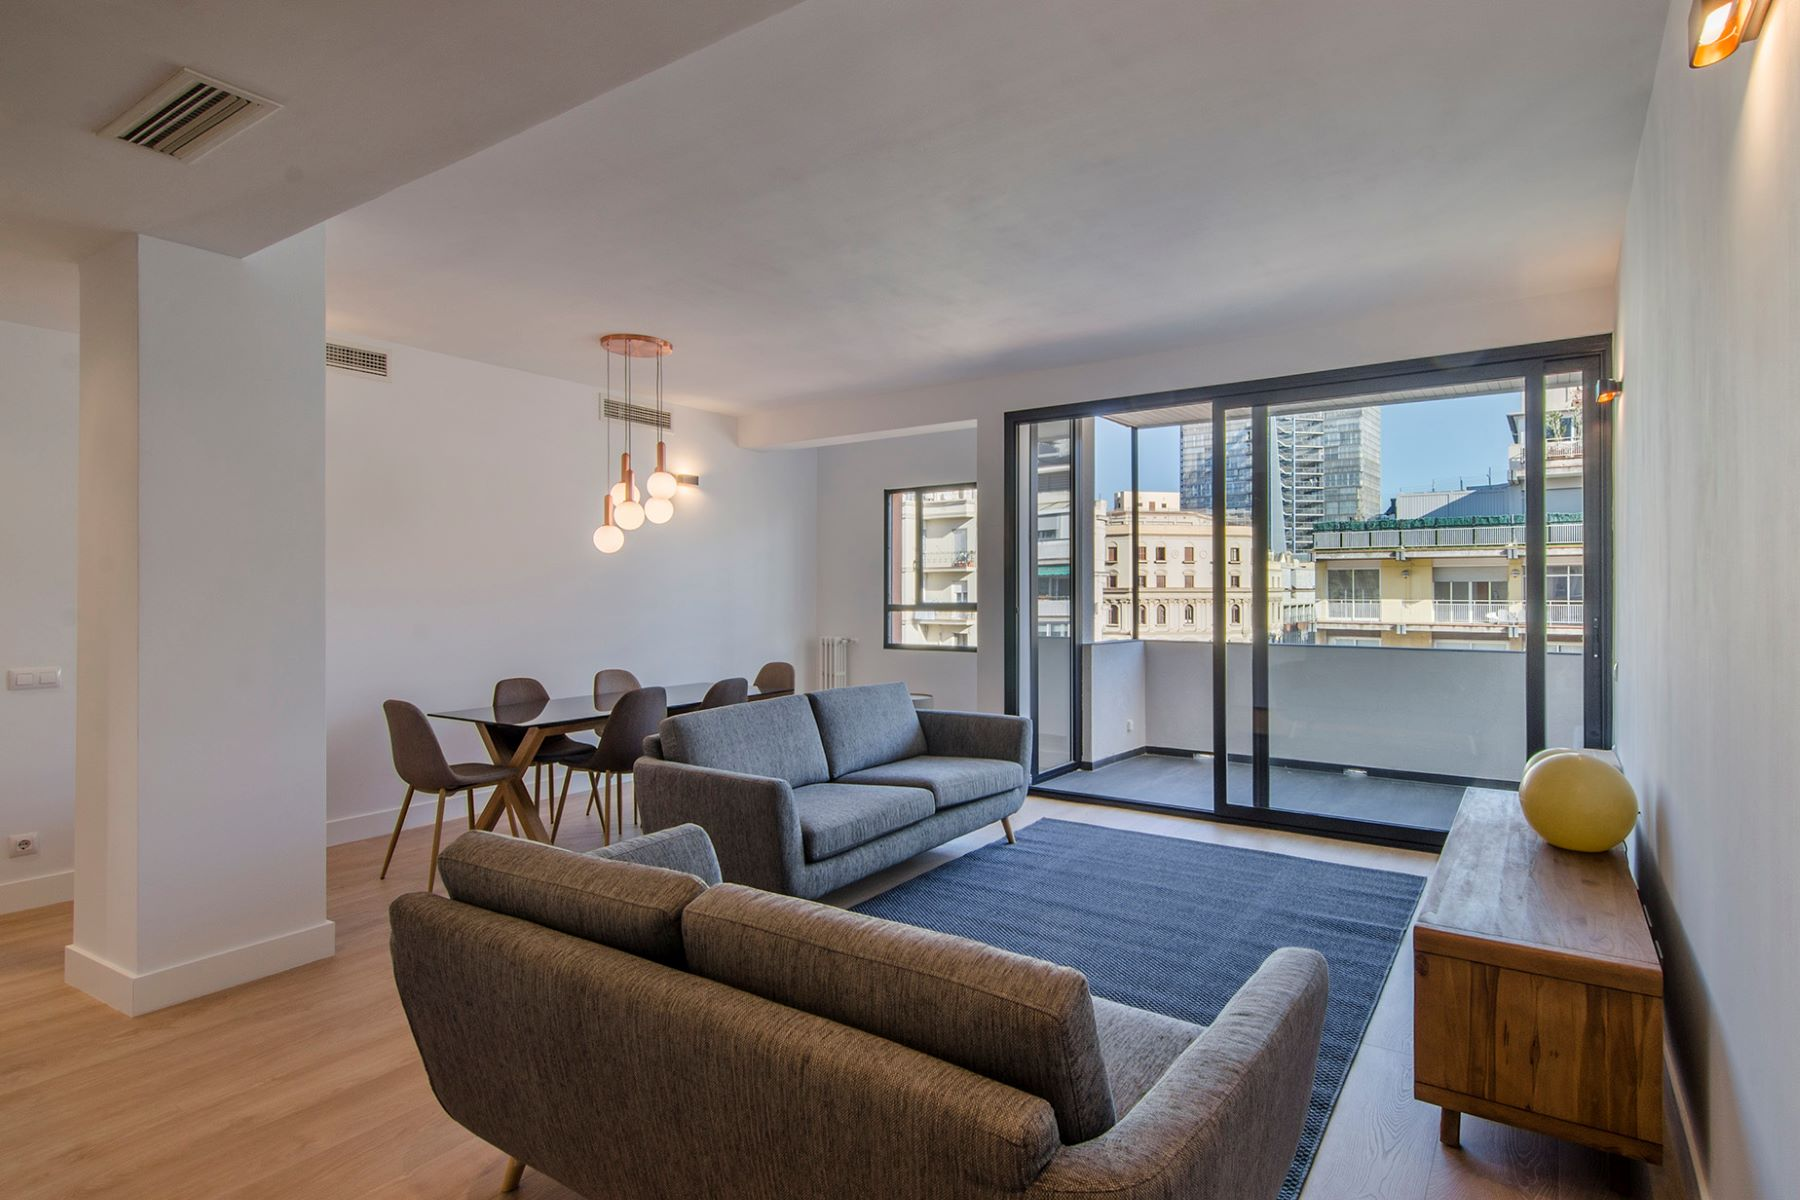 Apartment for Sale at Superb bright and brand new flat with terrace in top location Barcelona City, Barcelona, 08034 Spain